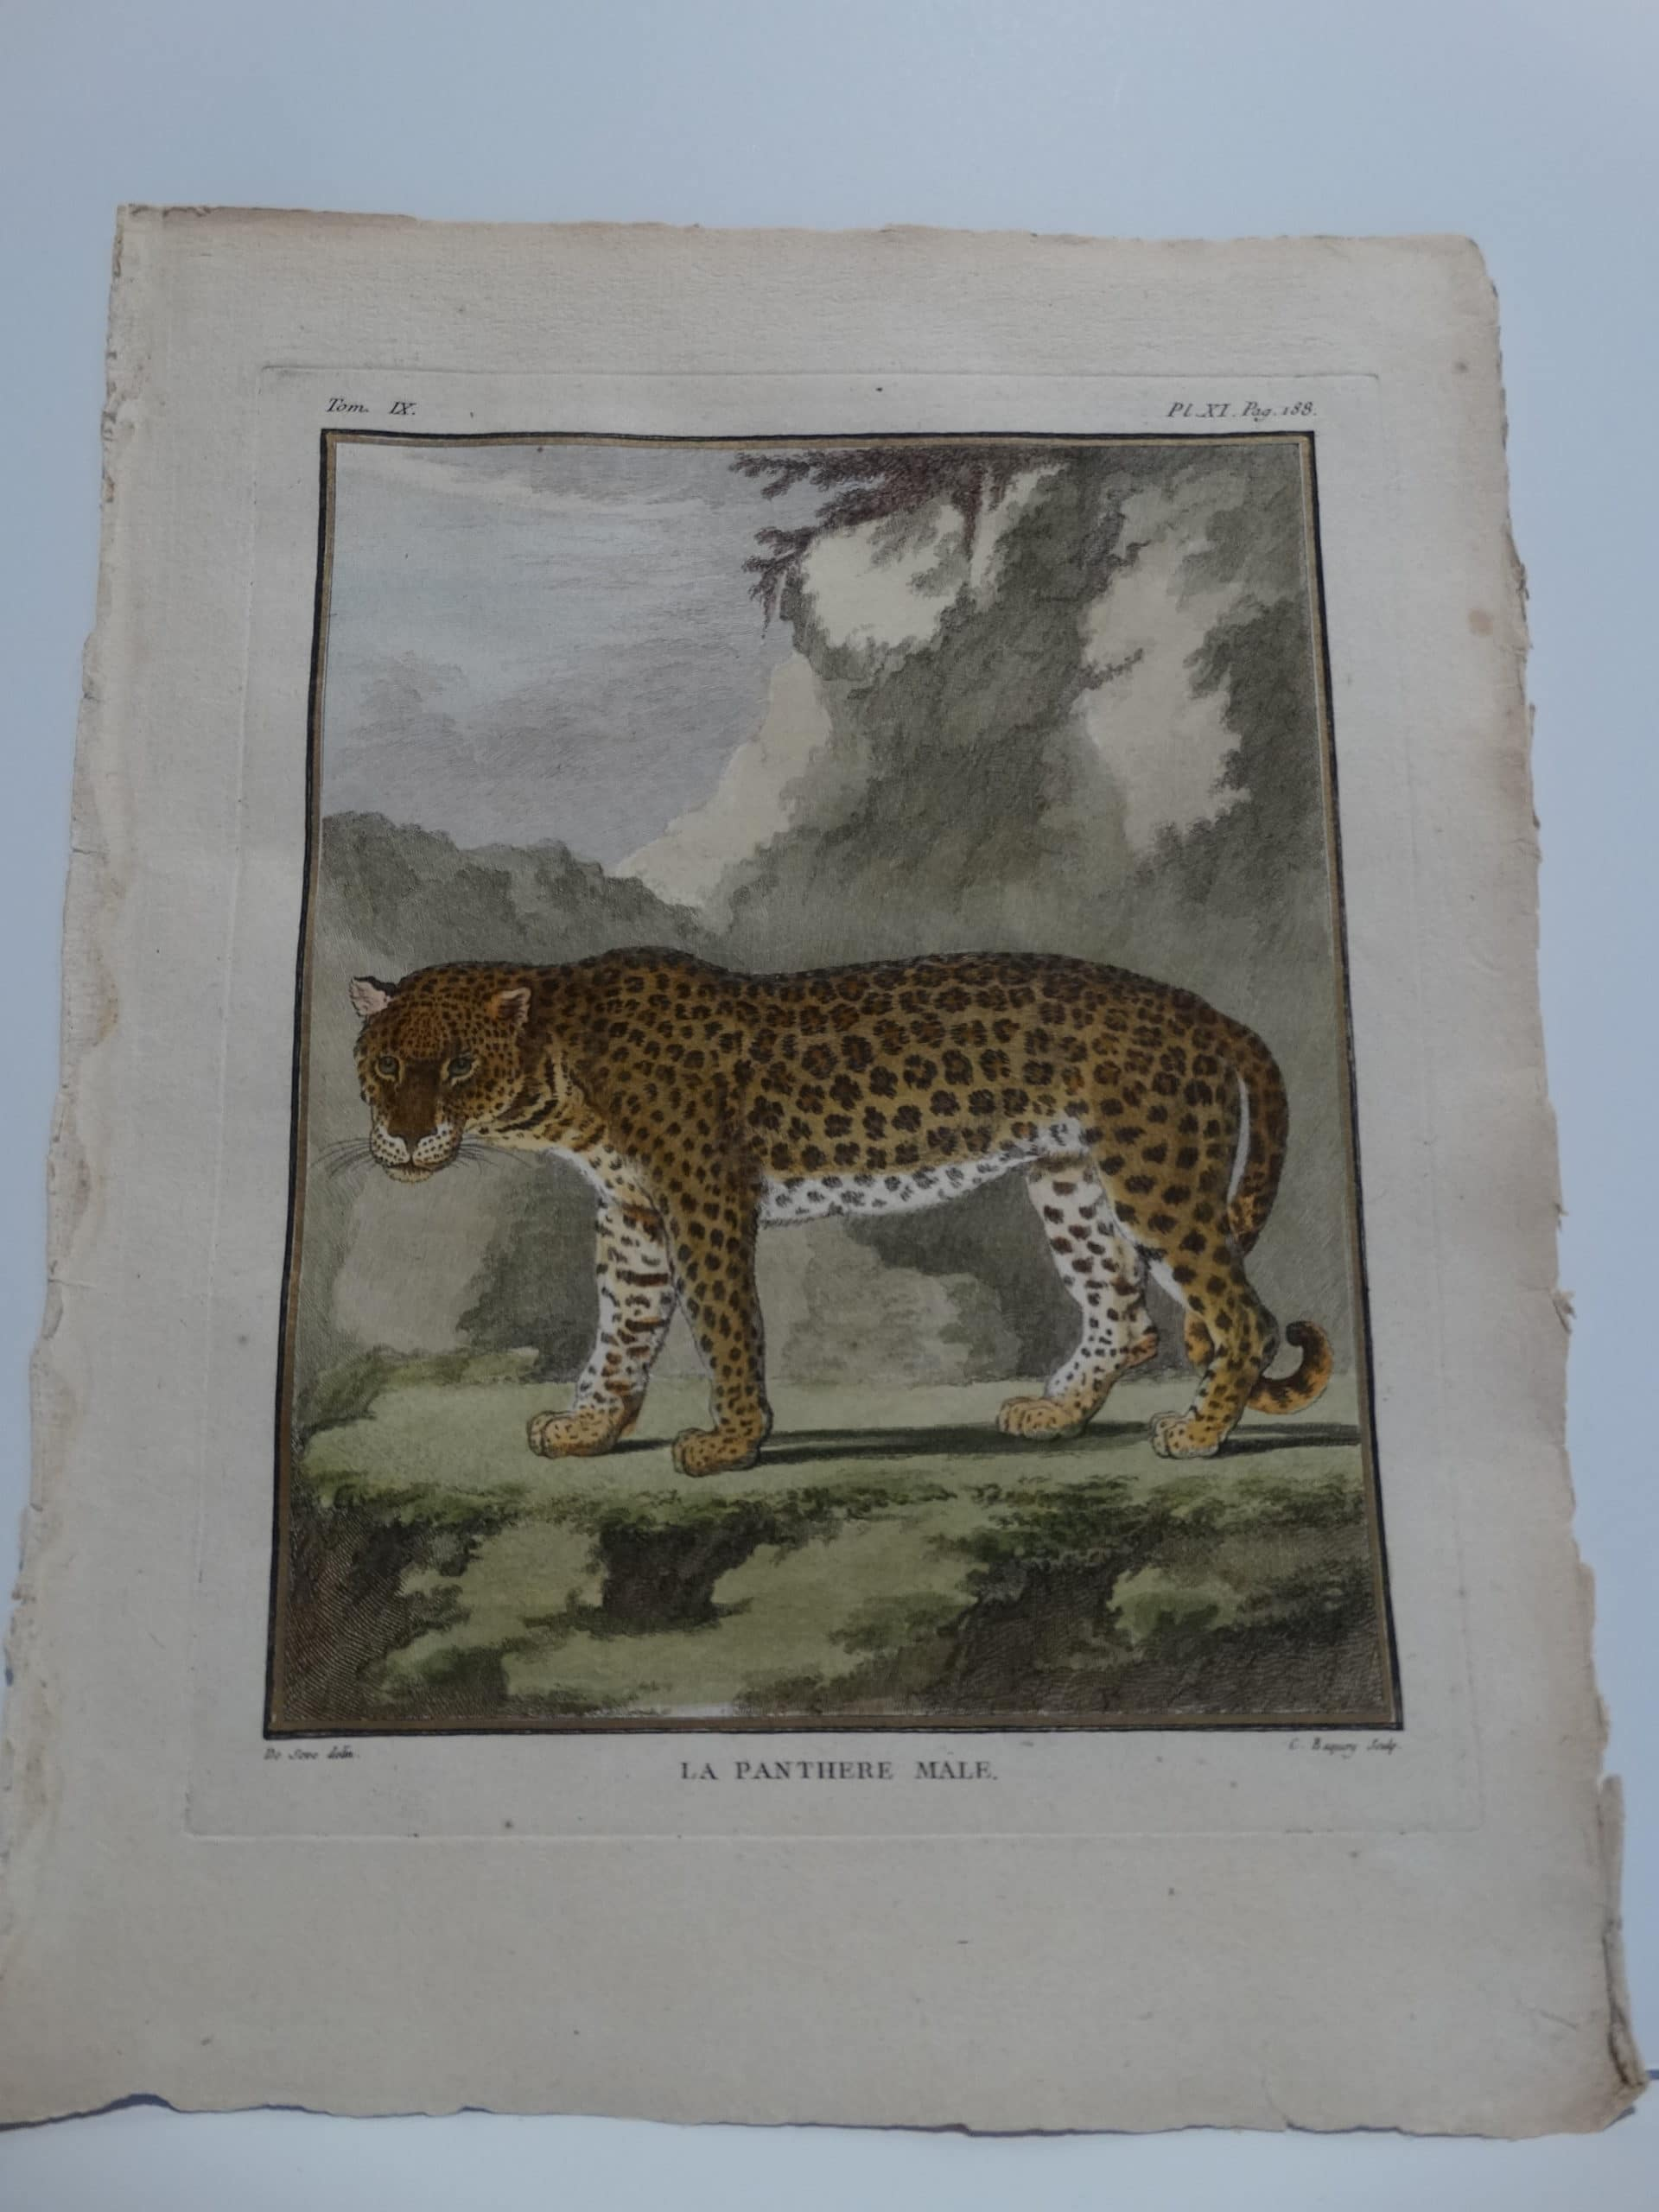 Highly detailed hand=-colored engraving of a panther.